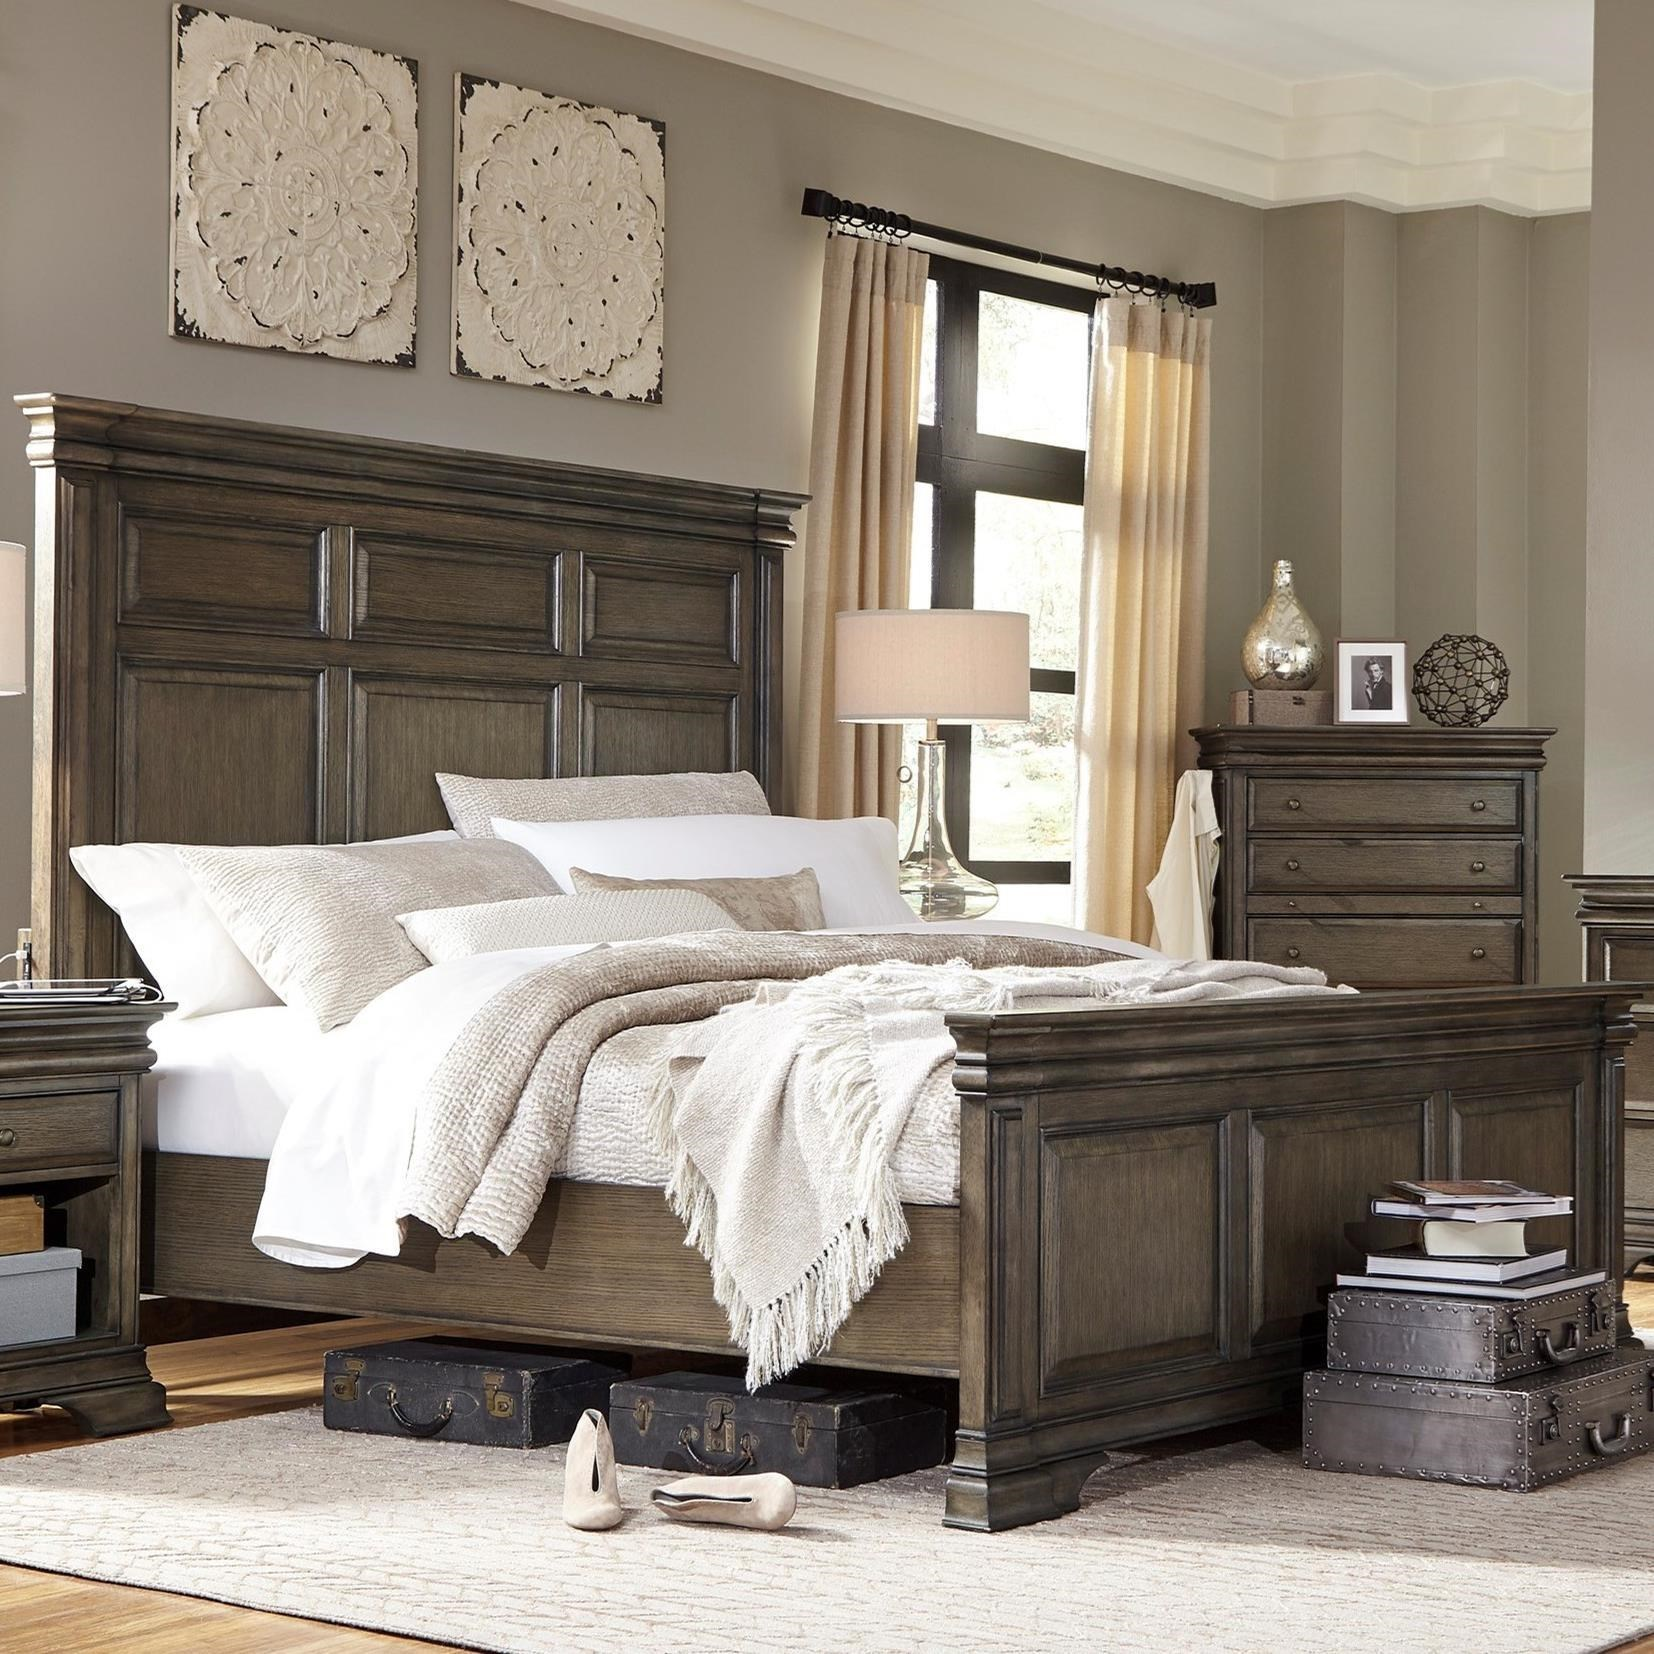 Aspenhome Arcadia King Panel Bed - Item Number: I92-415-416-406